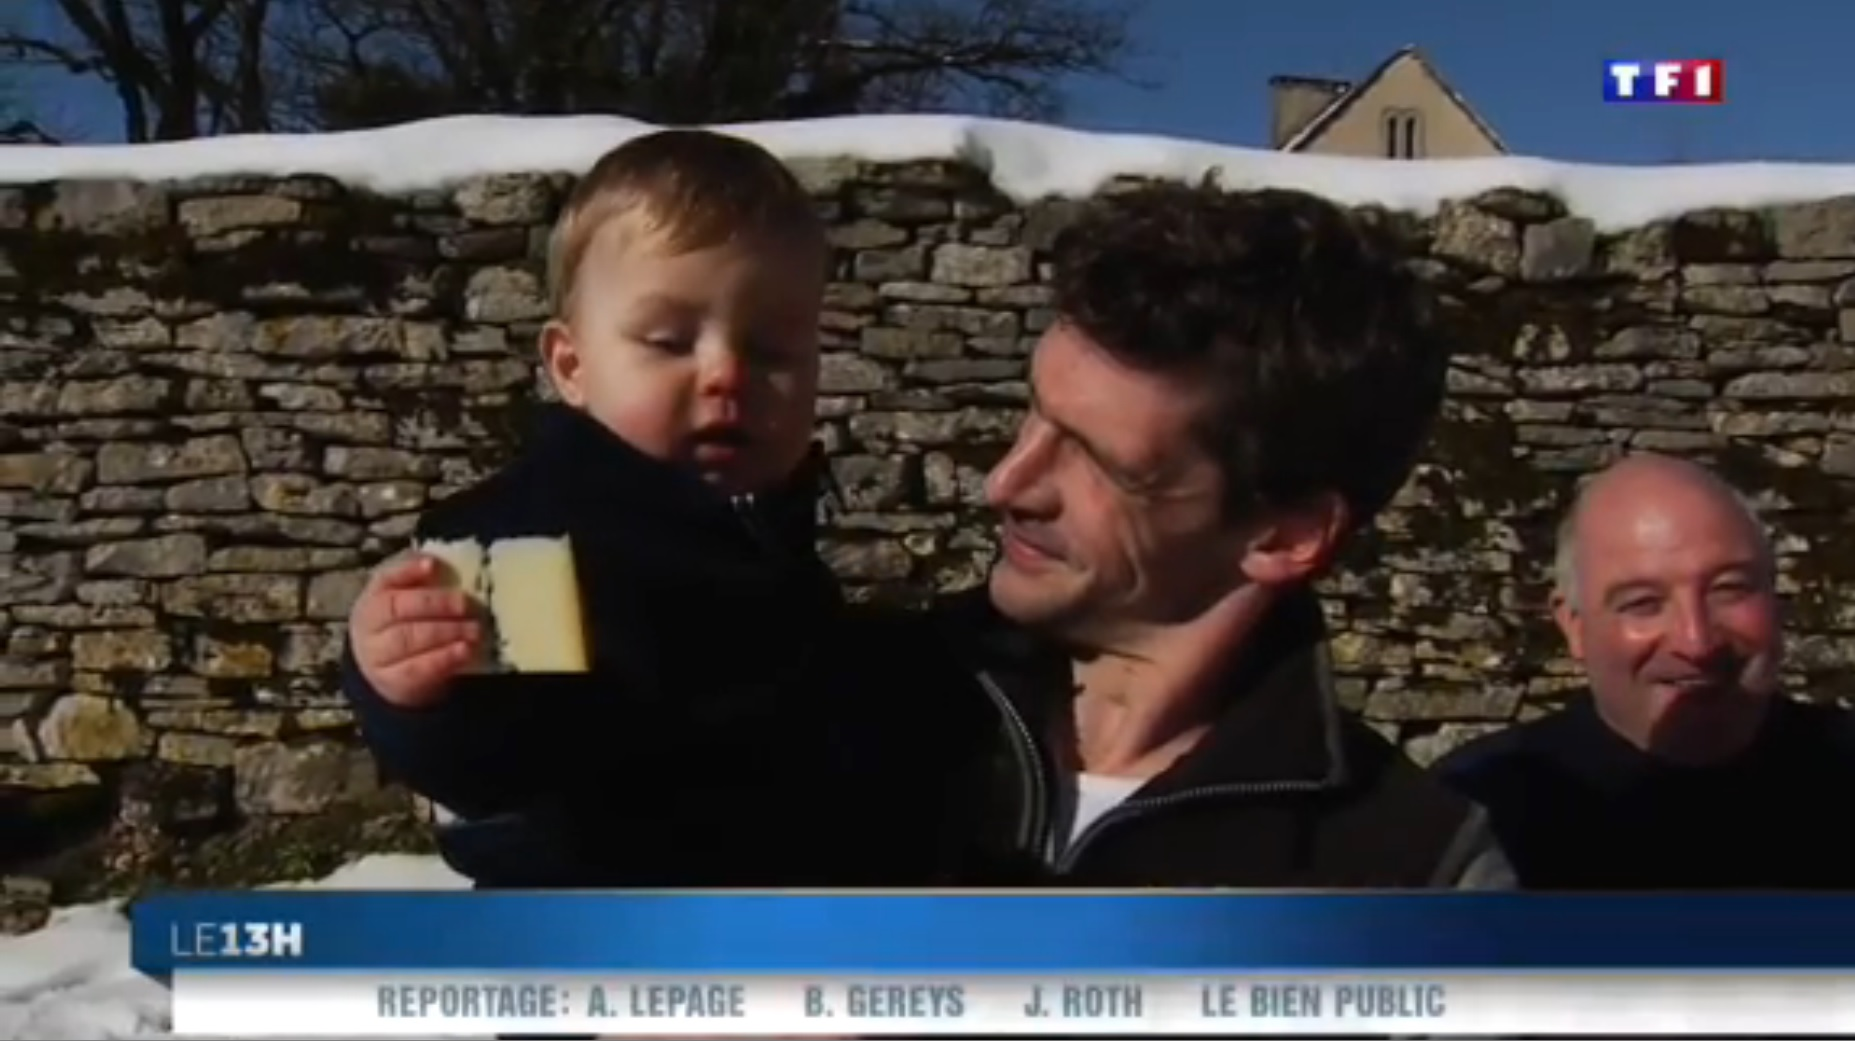 TF1 Jura (2-5) - une famille de fromagers  54